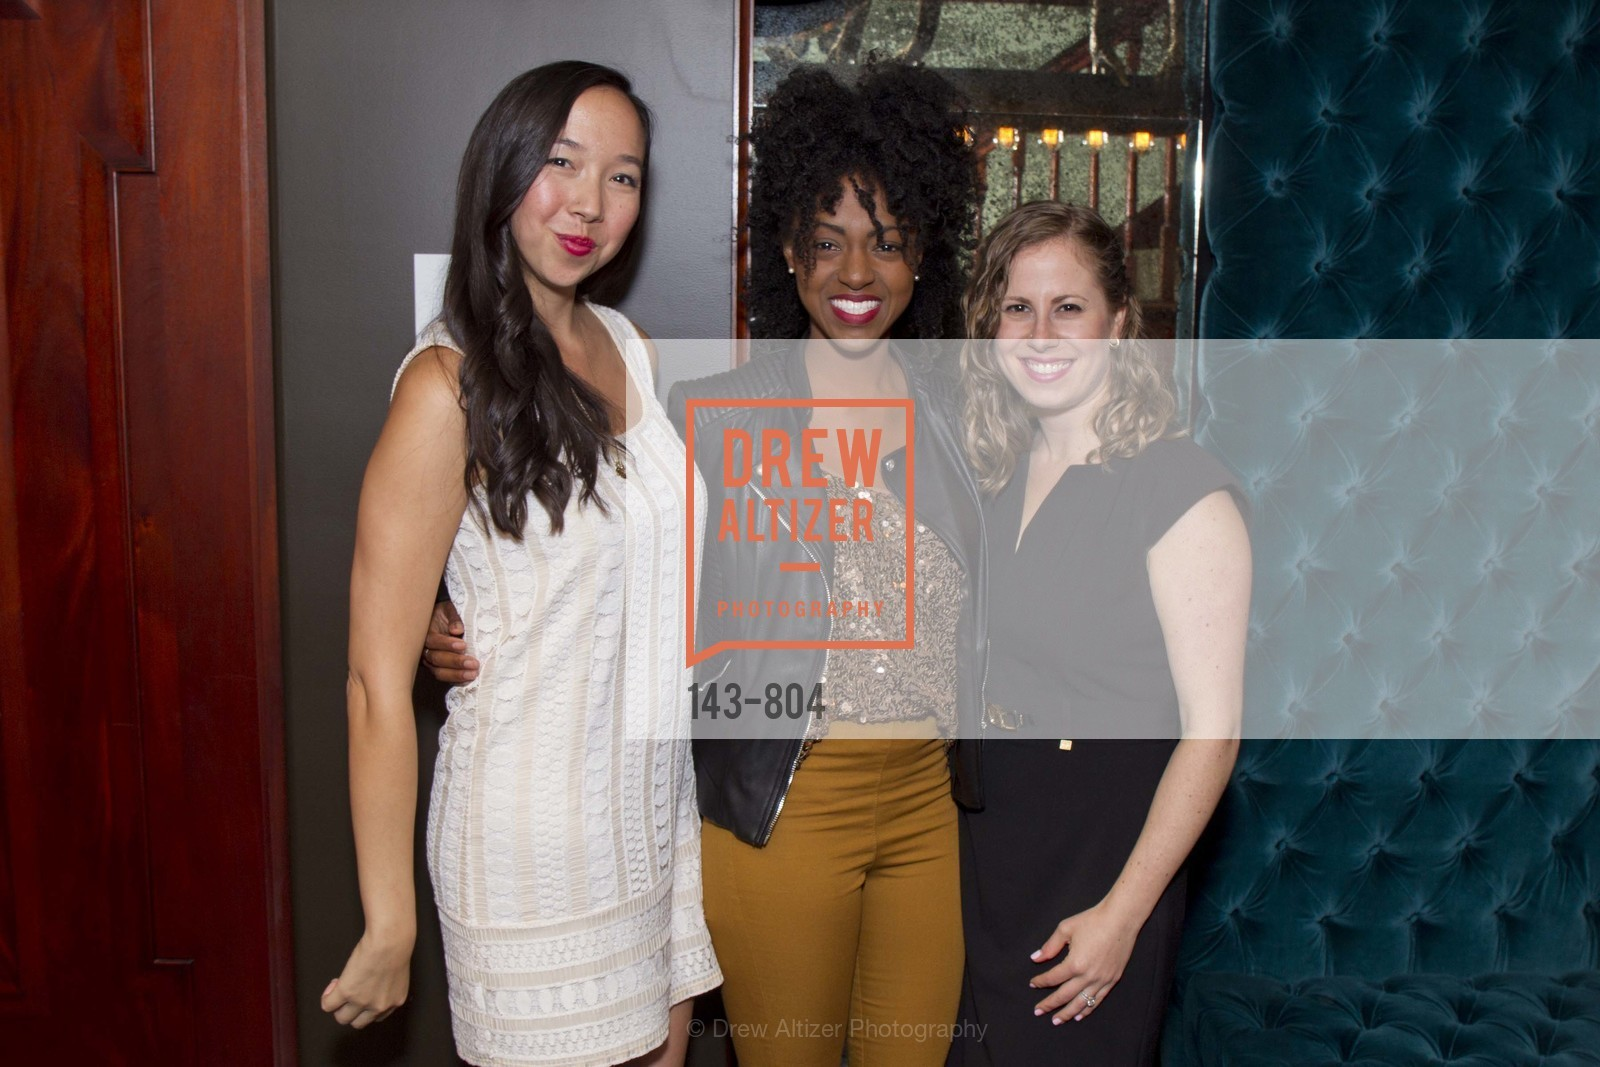 Lorraine Rowan, Kayla Newkirk, Tova Schachter, San Francisco Decorator Showcase Opening Night Party, US, April 25th, 2015,Drew Altizer, Drew Altizer Photography, full-service agency, private events, San Francisco photographer, photographer california